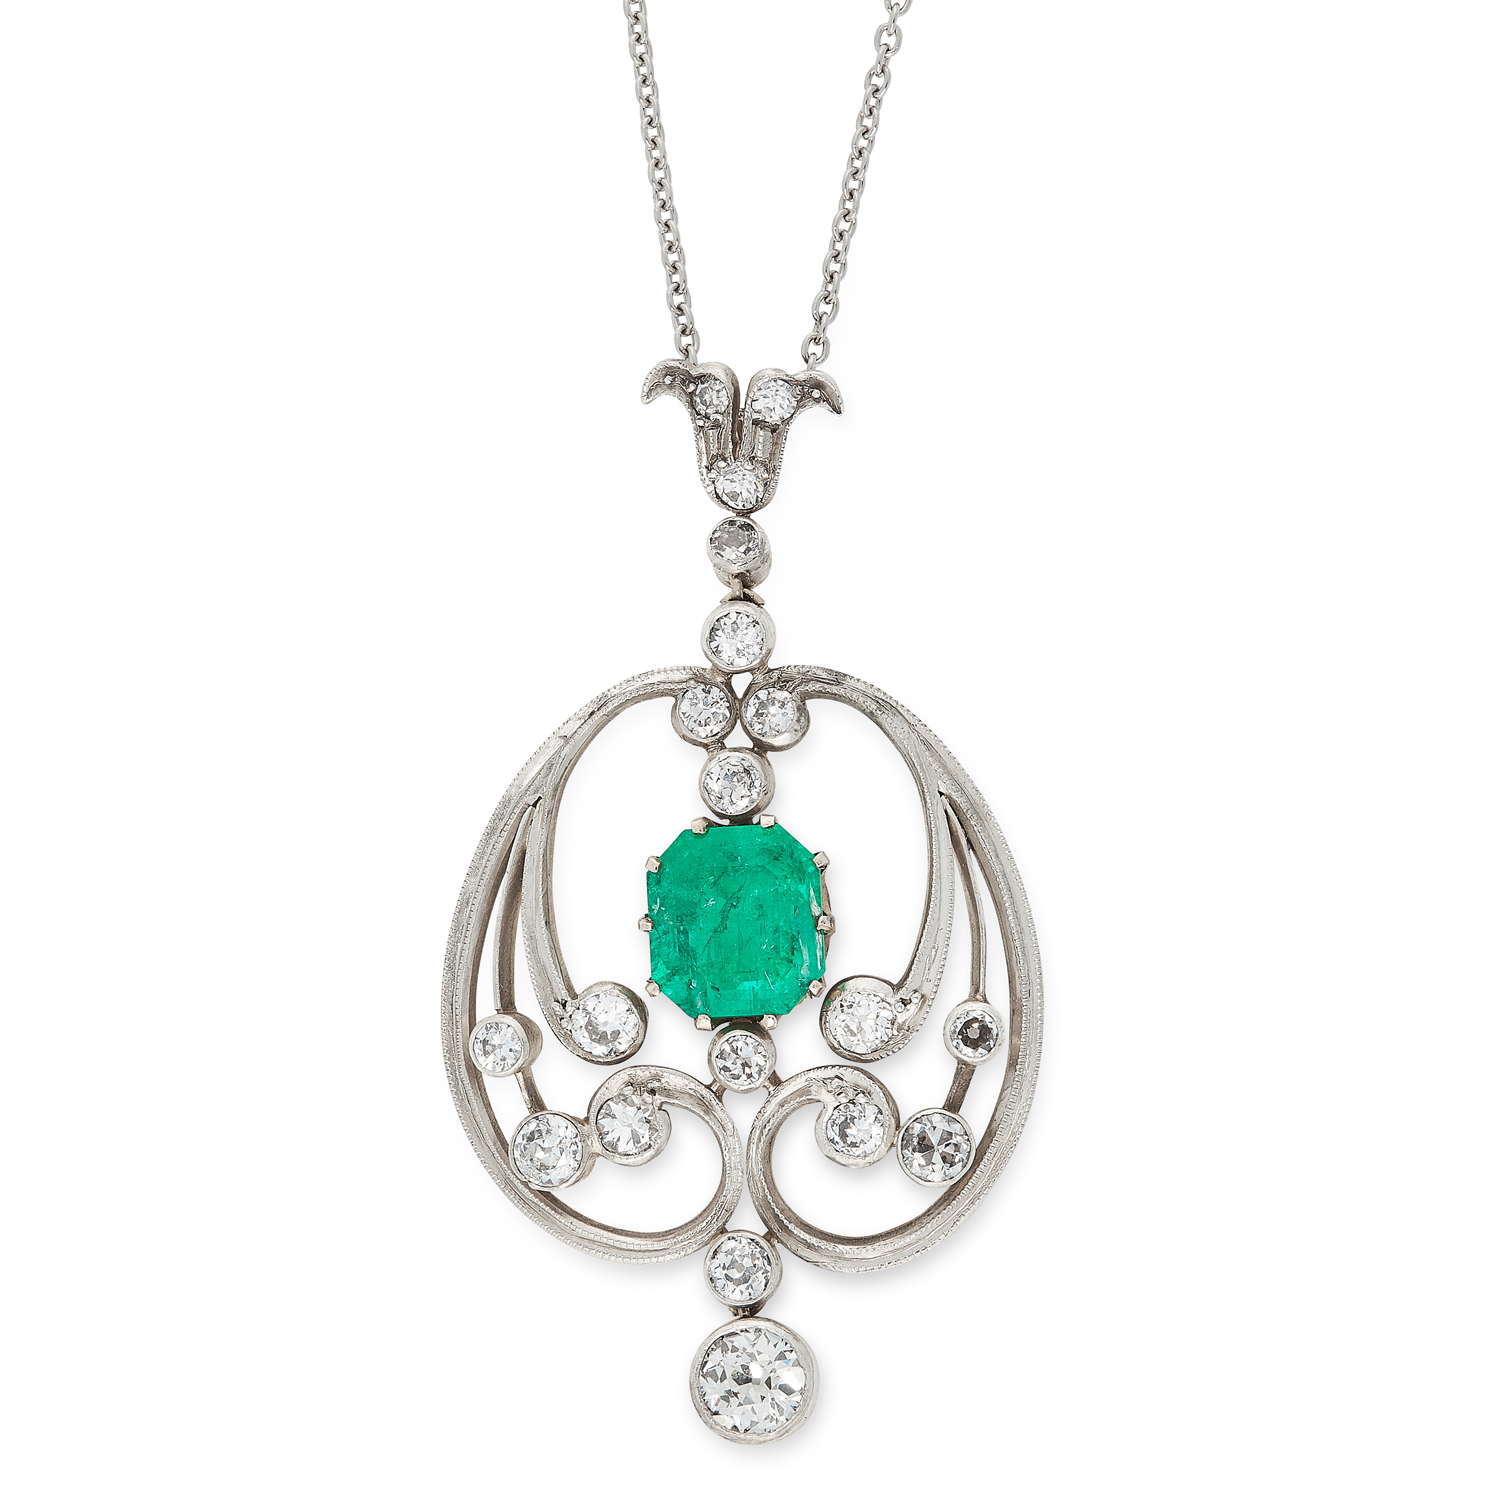 AN ART NOUVEAU EMERALD AND DIAMOND PENDANT in yellow gold and silver, set with a central emerald cut